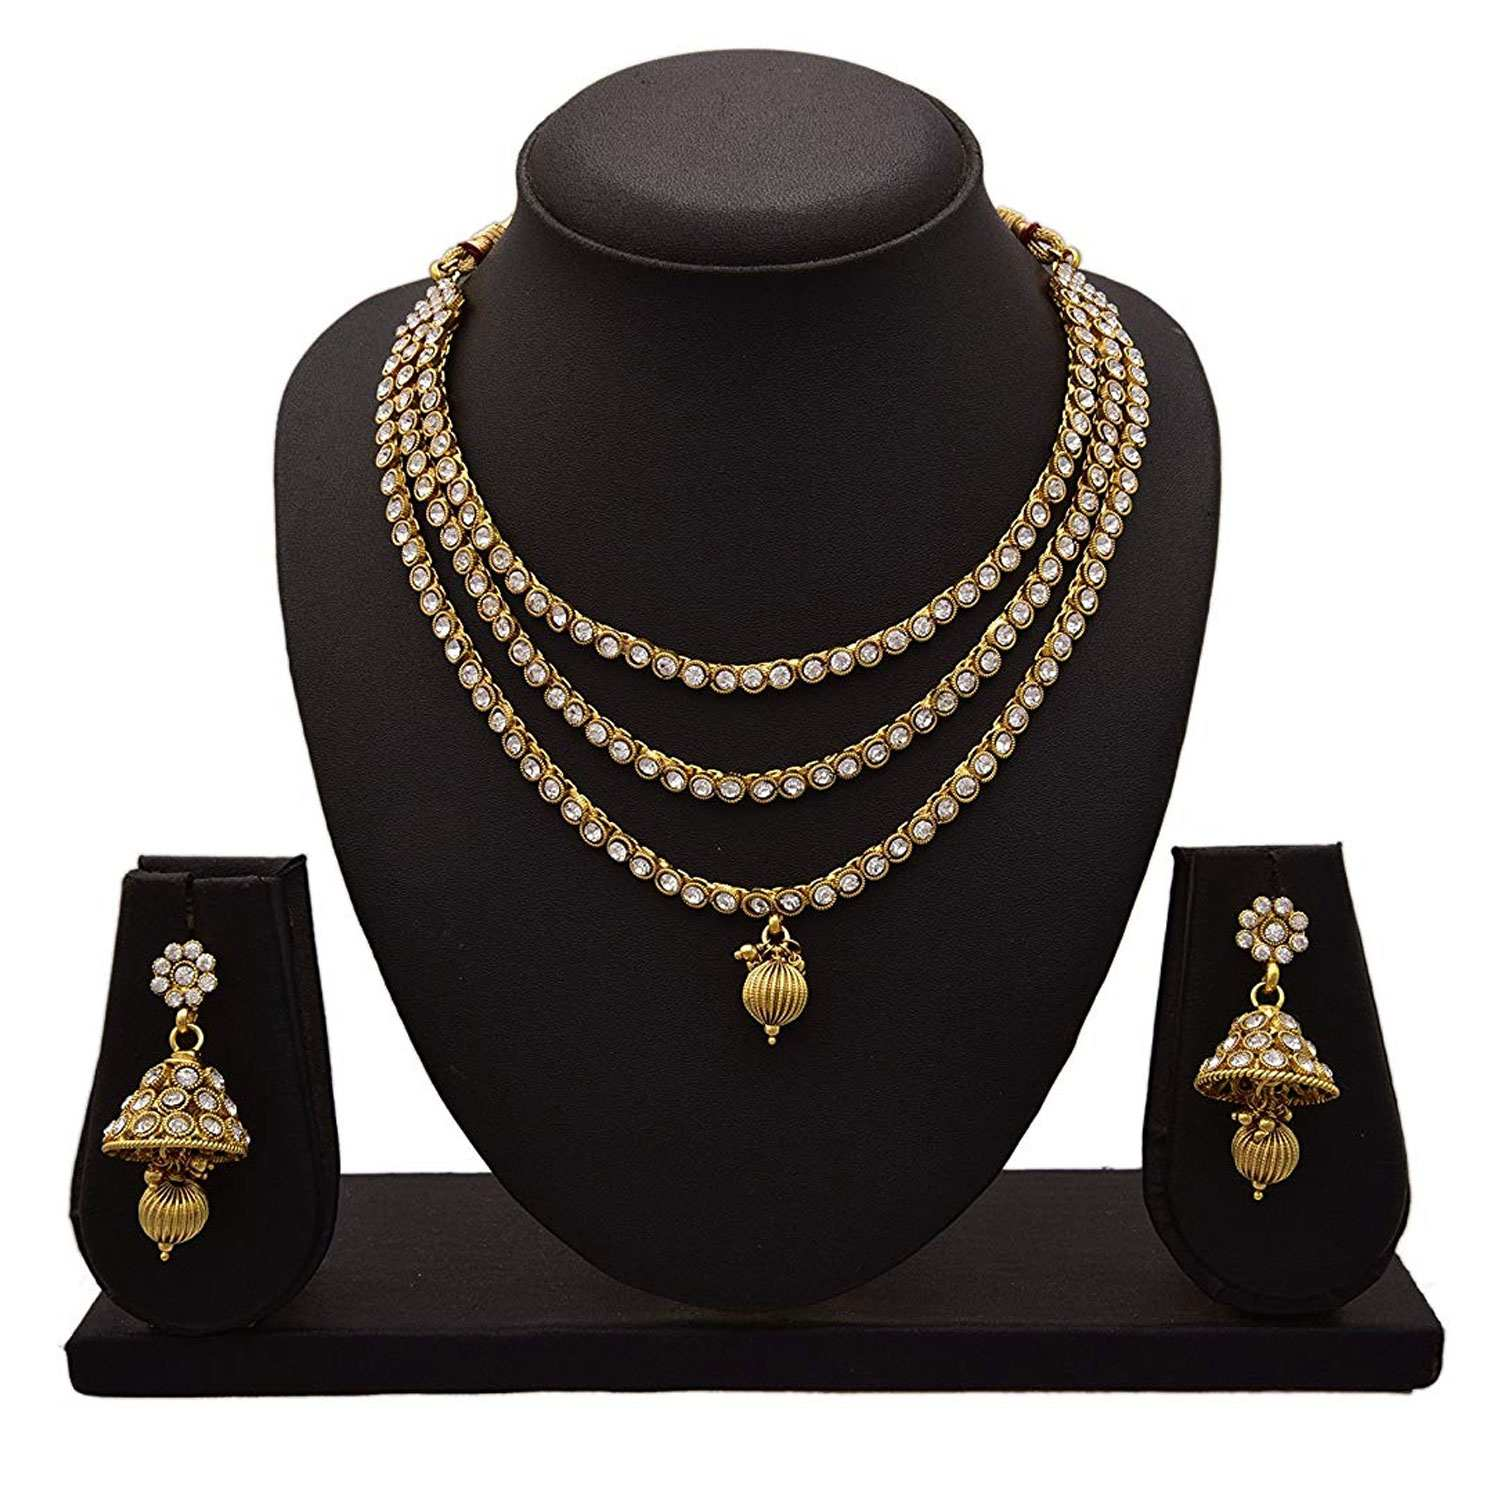 JFL - Traditional Irresistible One Gram Gold Plated White Austrian Diamond Designer Necklace Set for Women & Girls.